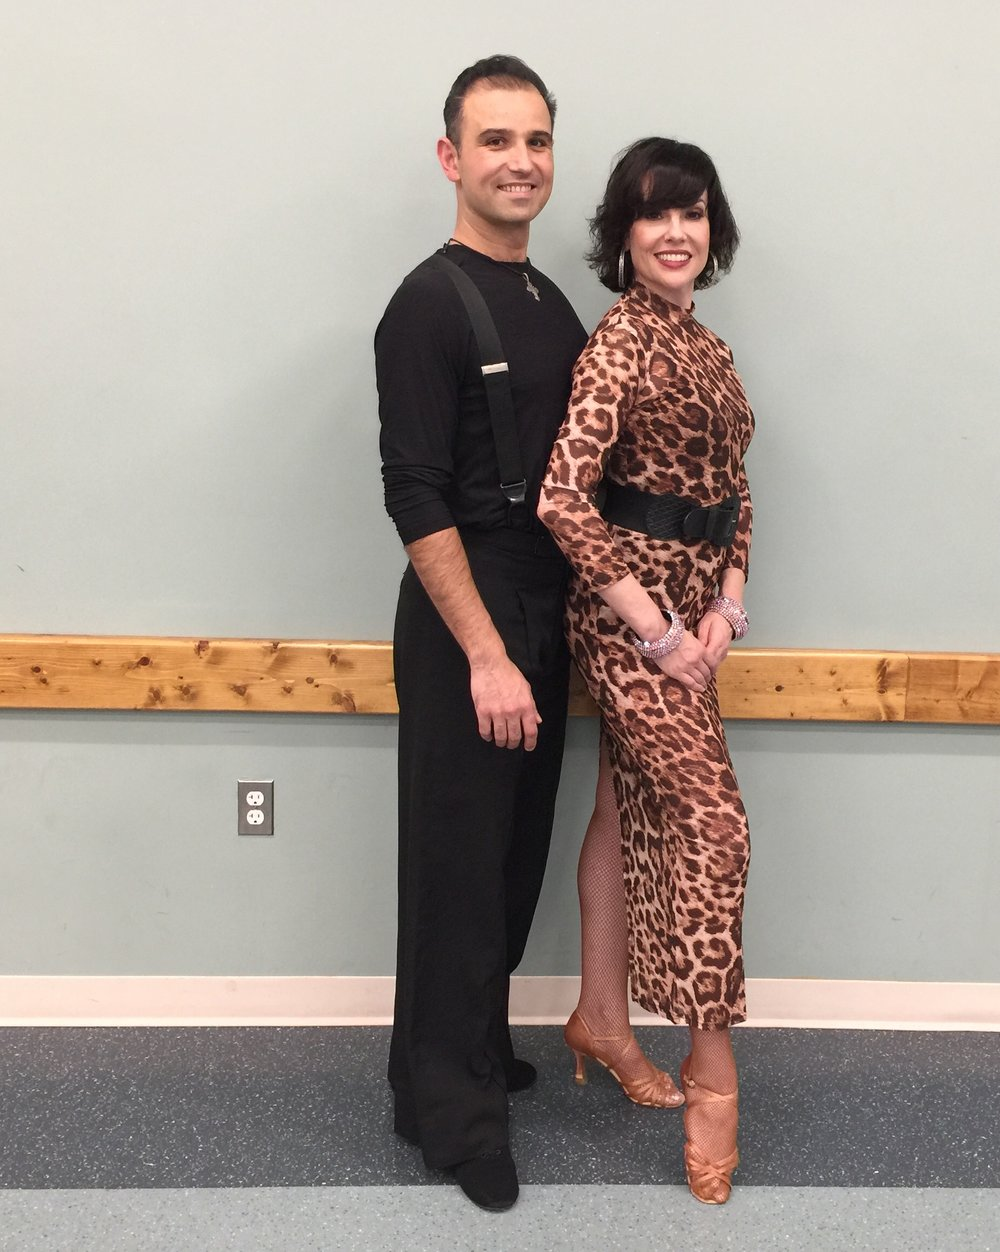 Tania Nunez & Dmitry Savchenko Performed Latin Dances At DanceInTime's Hispanic Heritage Month Shows